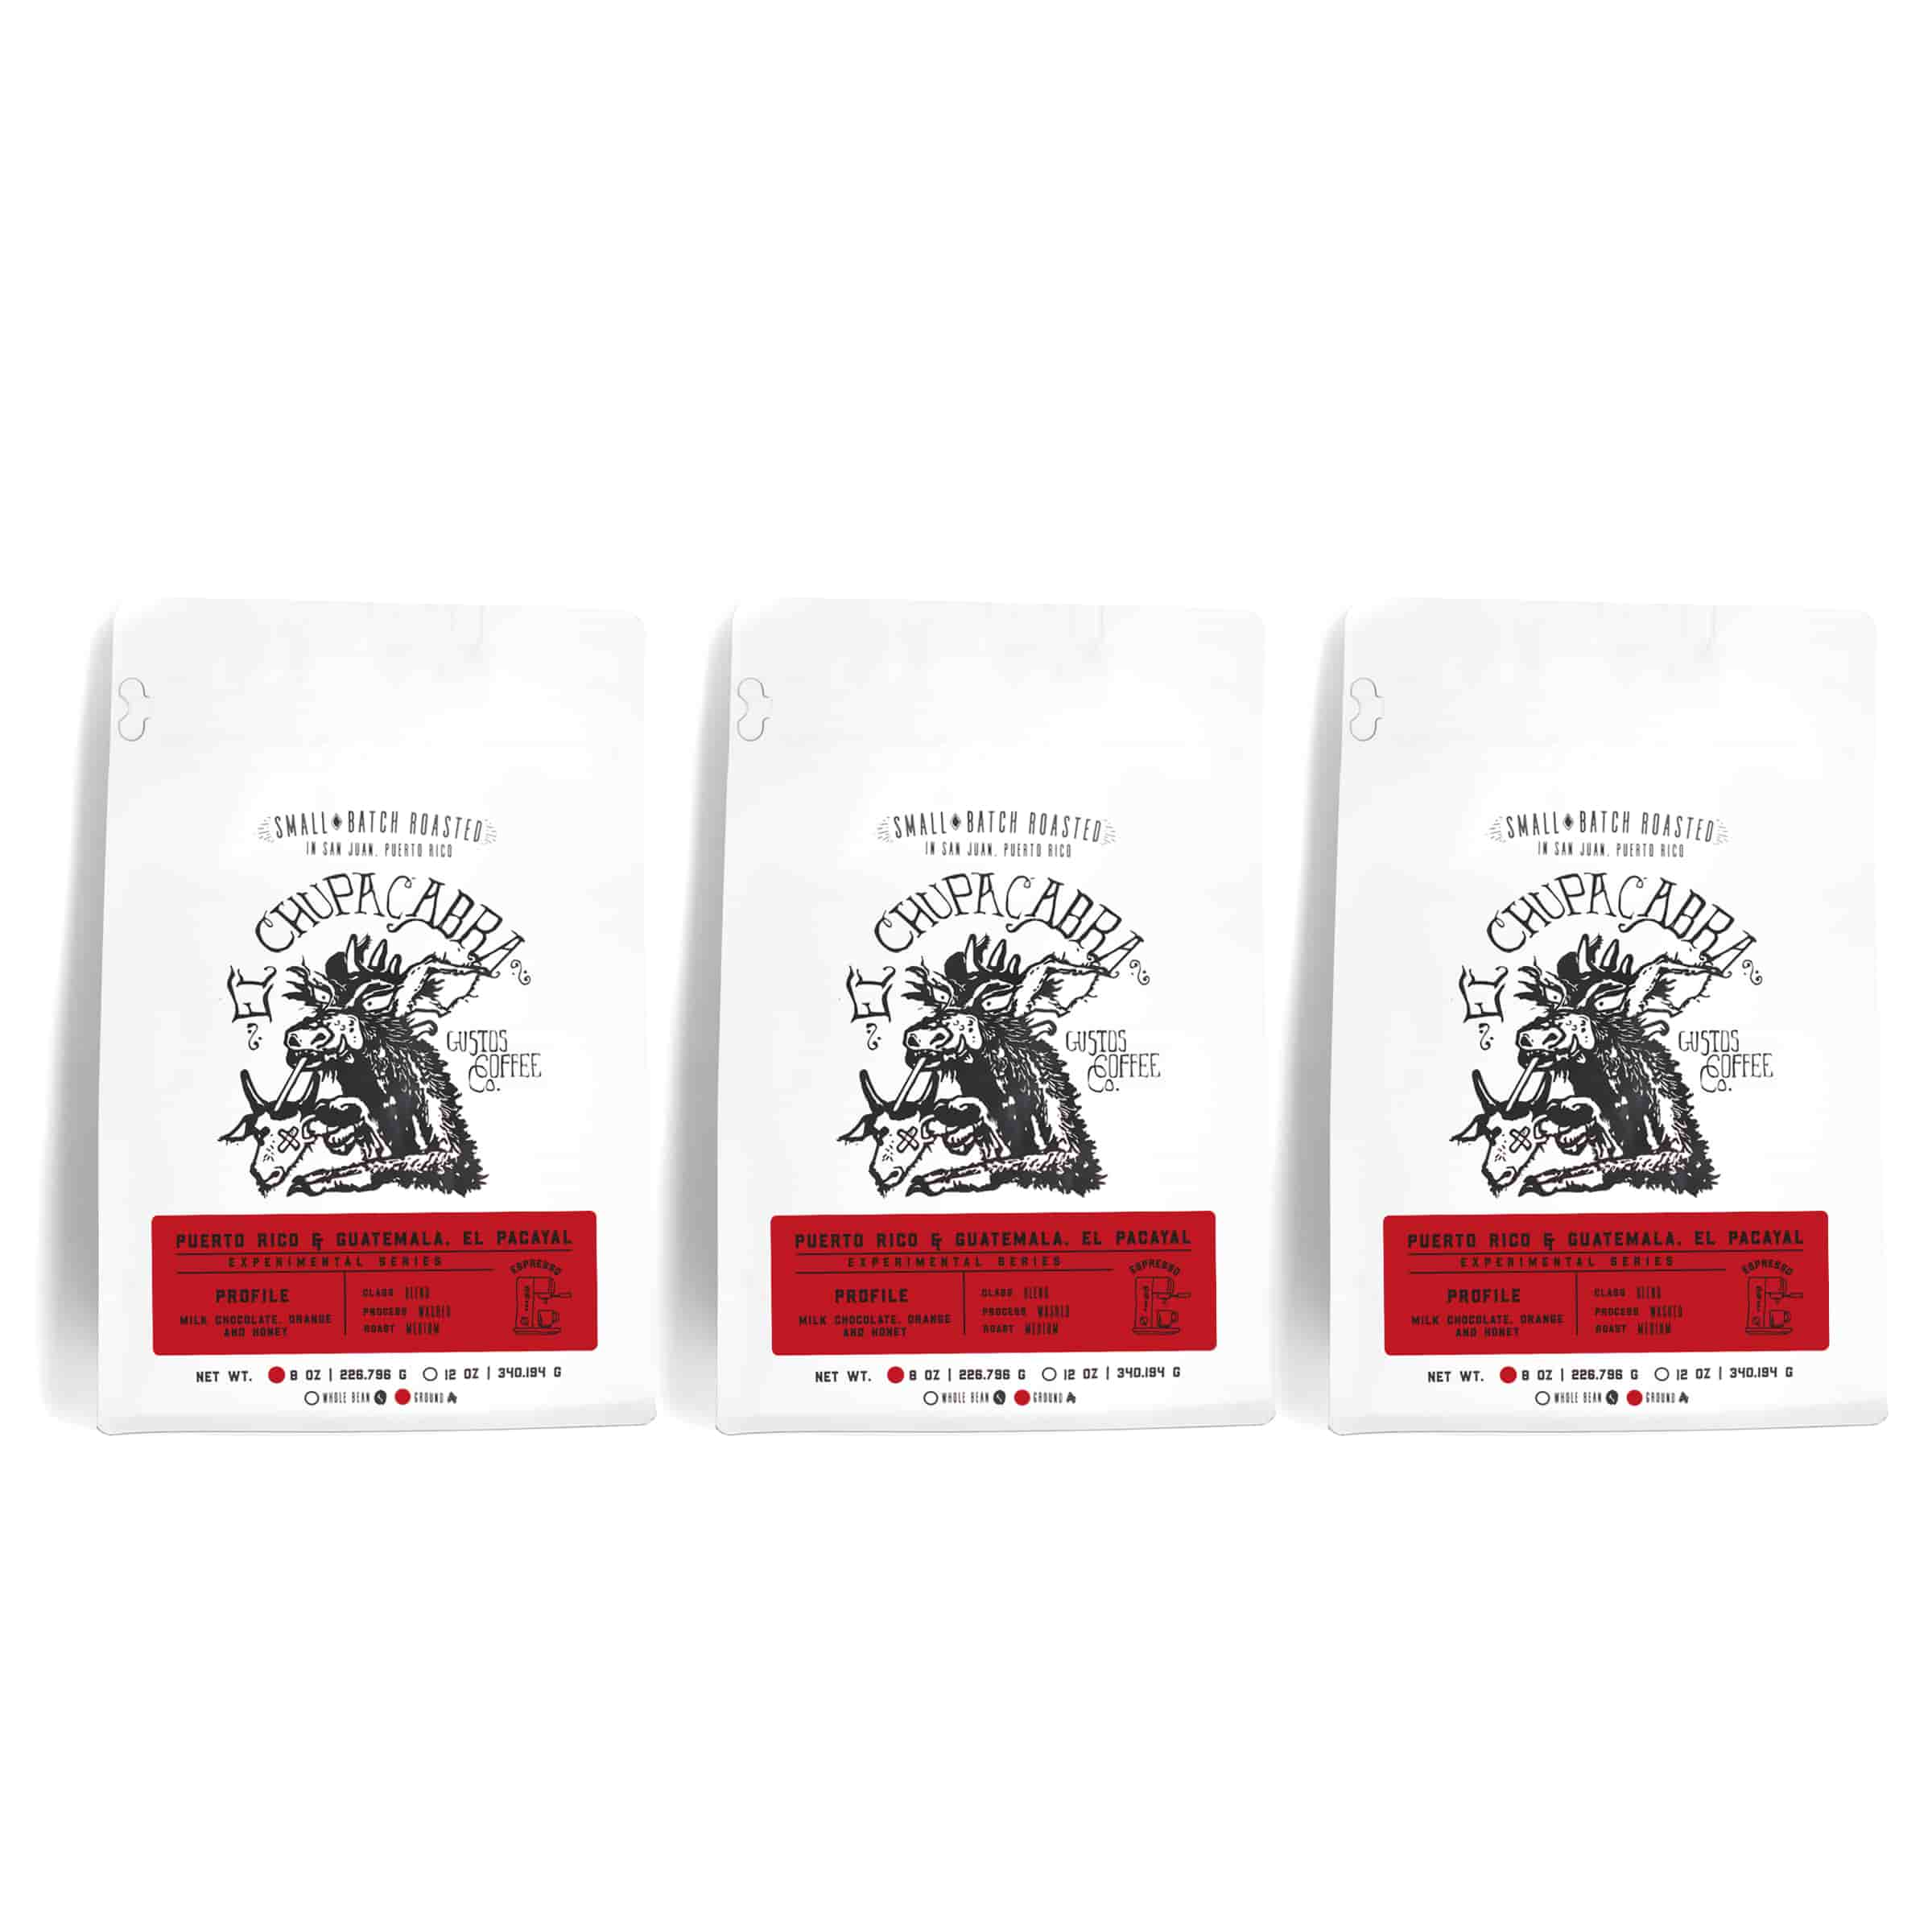 3-Pack El Chupacabra Puerto Rico - Guatemala El Pacayal Specialty blend Ground